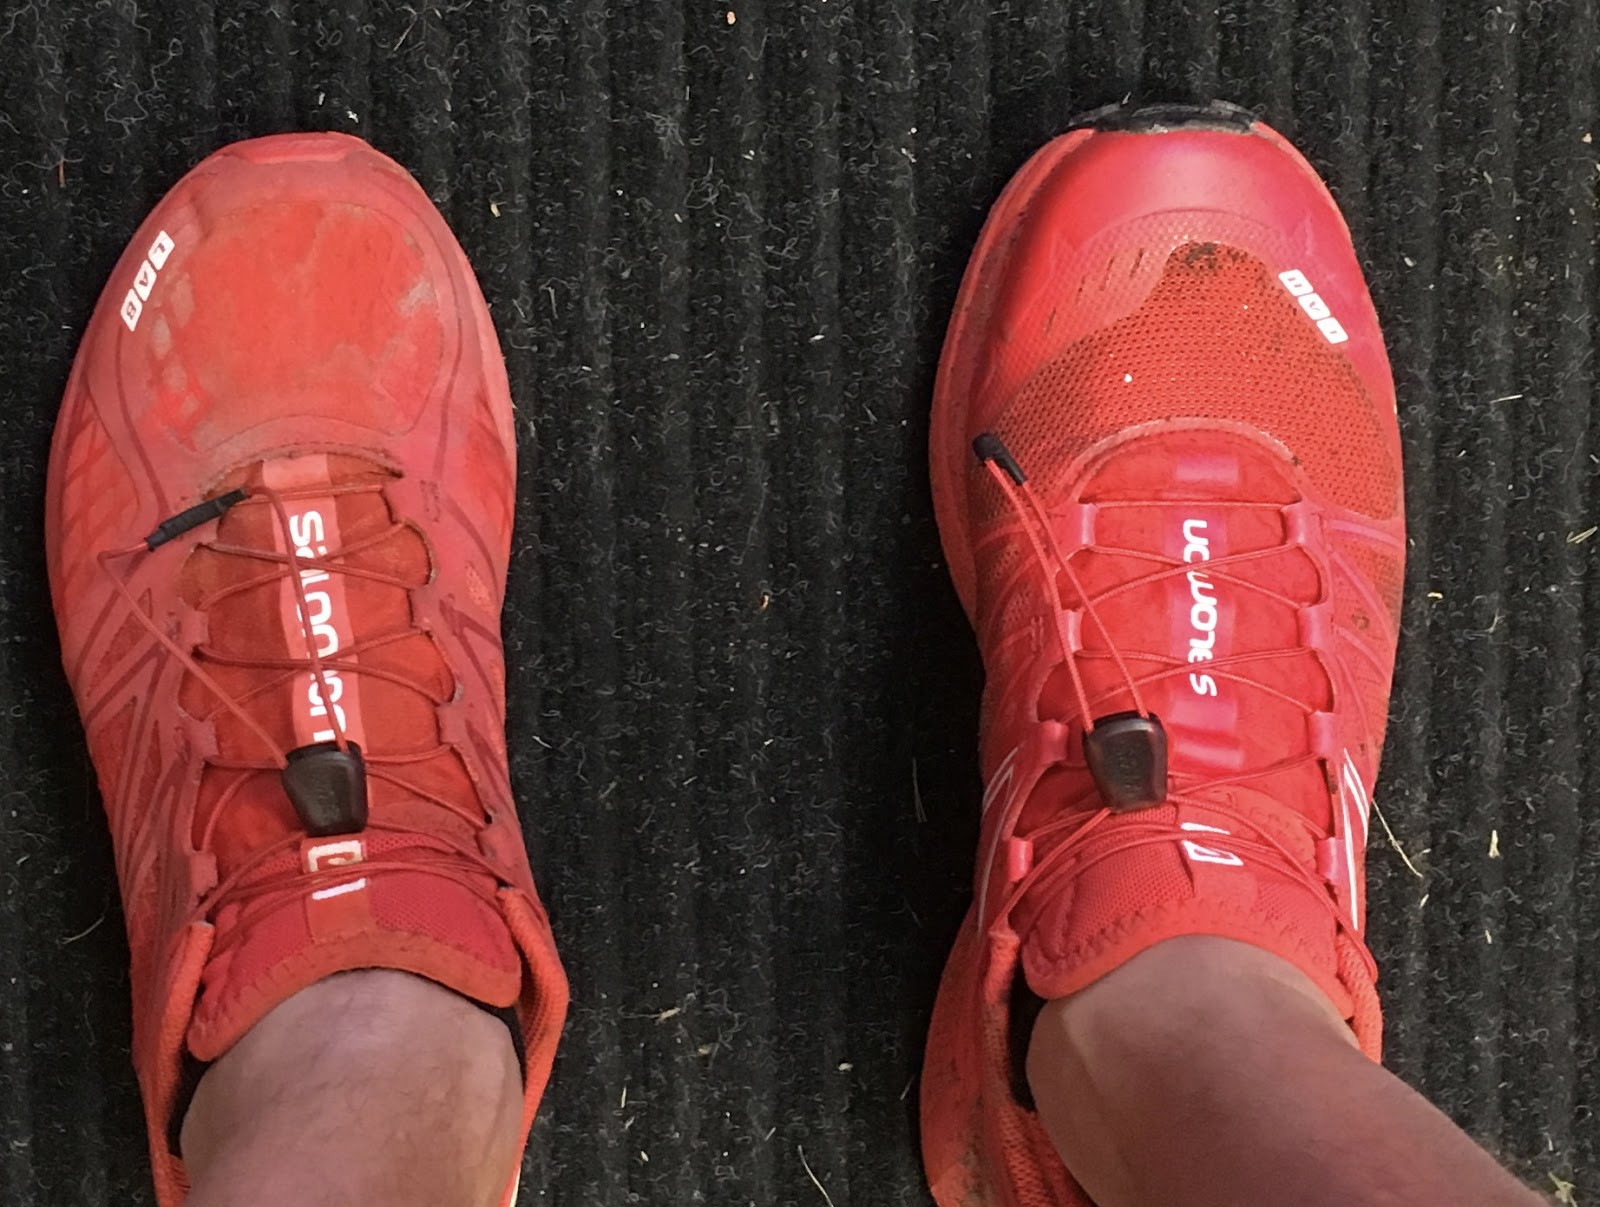 How Roomy Should The Toe Box Be In Shoes